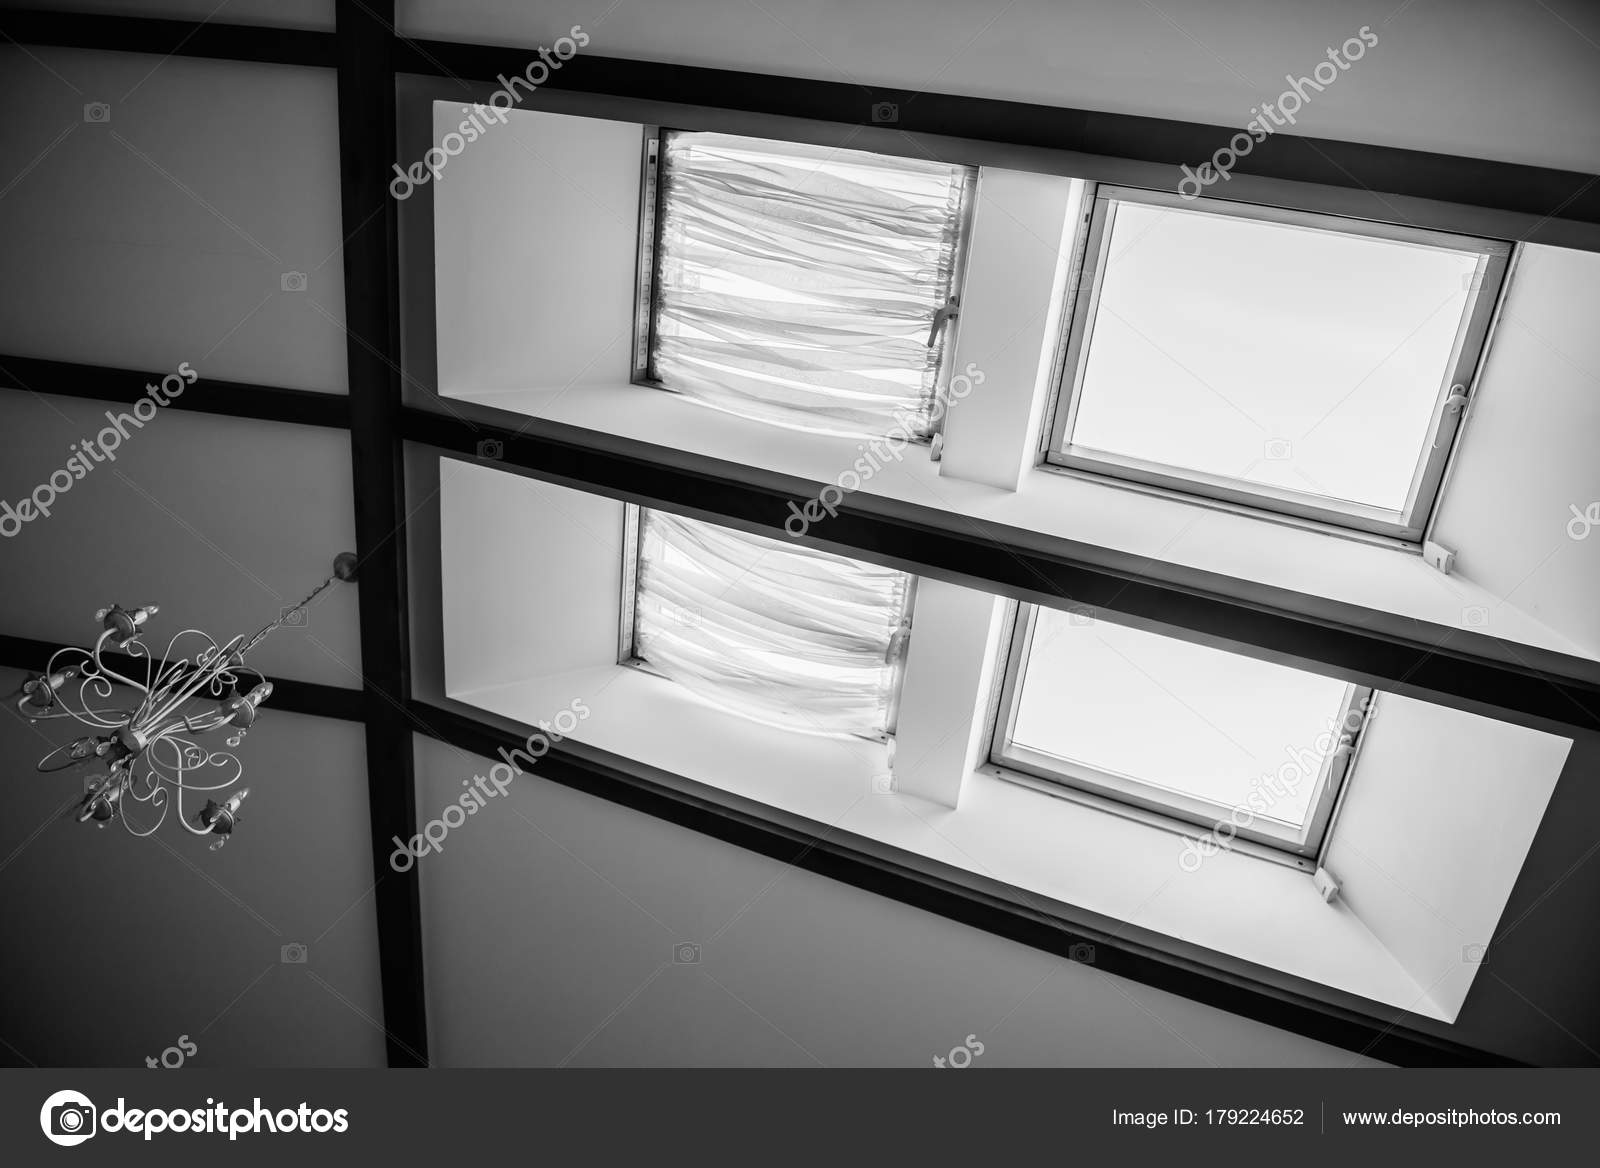 skylights in the roof of the house — Stock Photo © Andreua #179224652